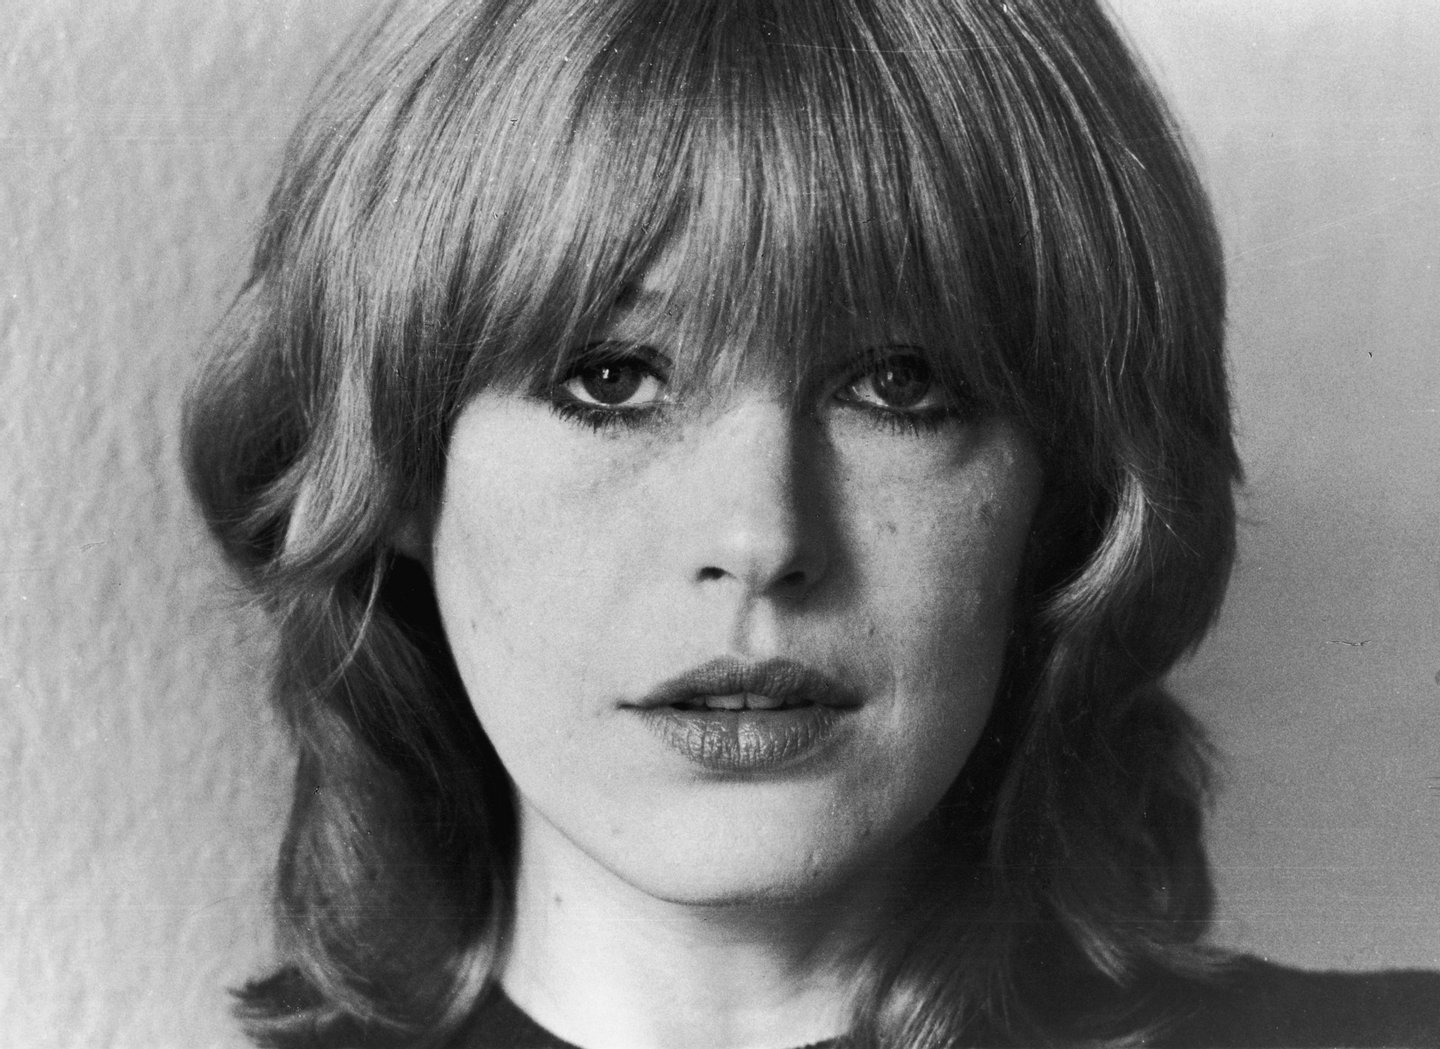 English singer Marianne Faithfull releases her new album 'Faithless', March 1978. (Photo by Evening Standard/Hulton Archive/Getty Images)